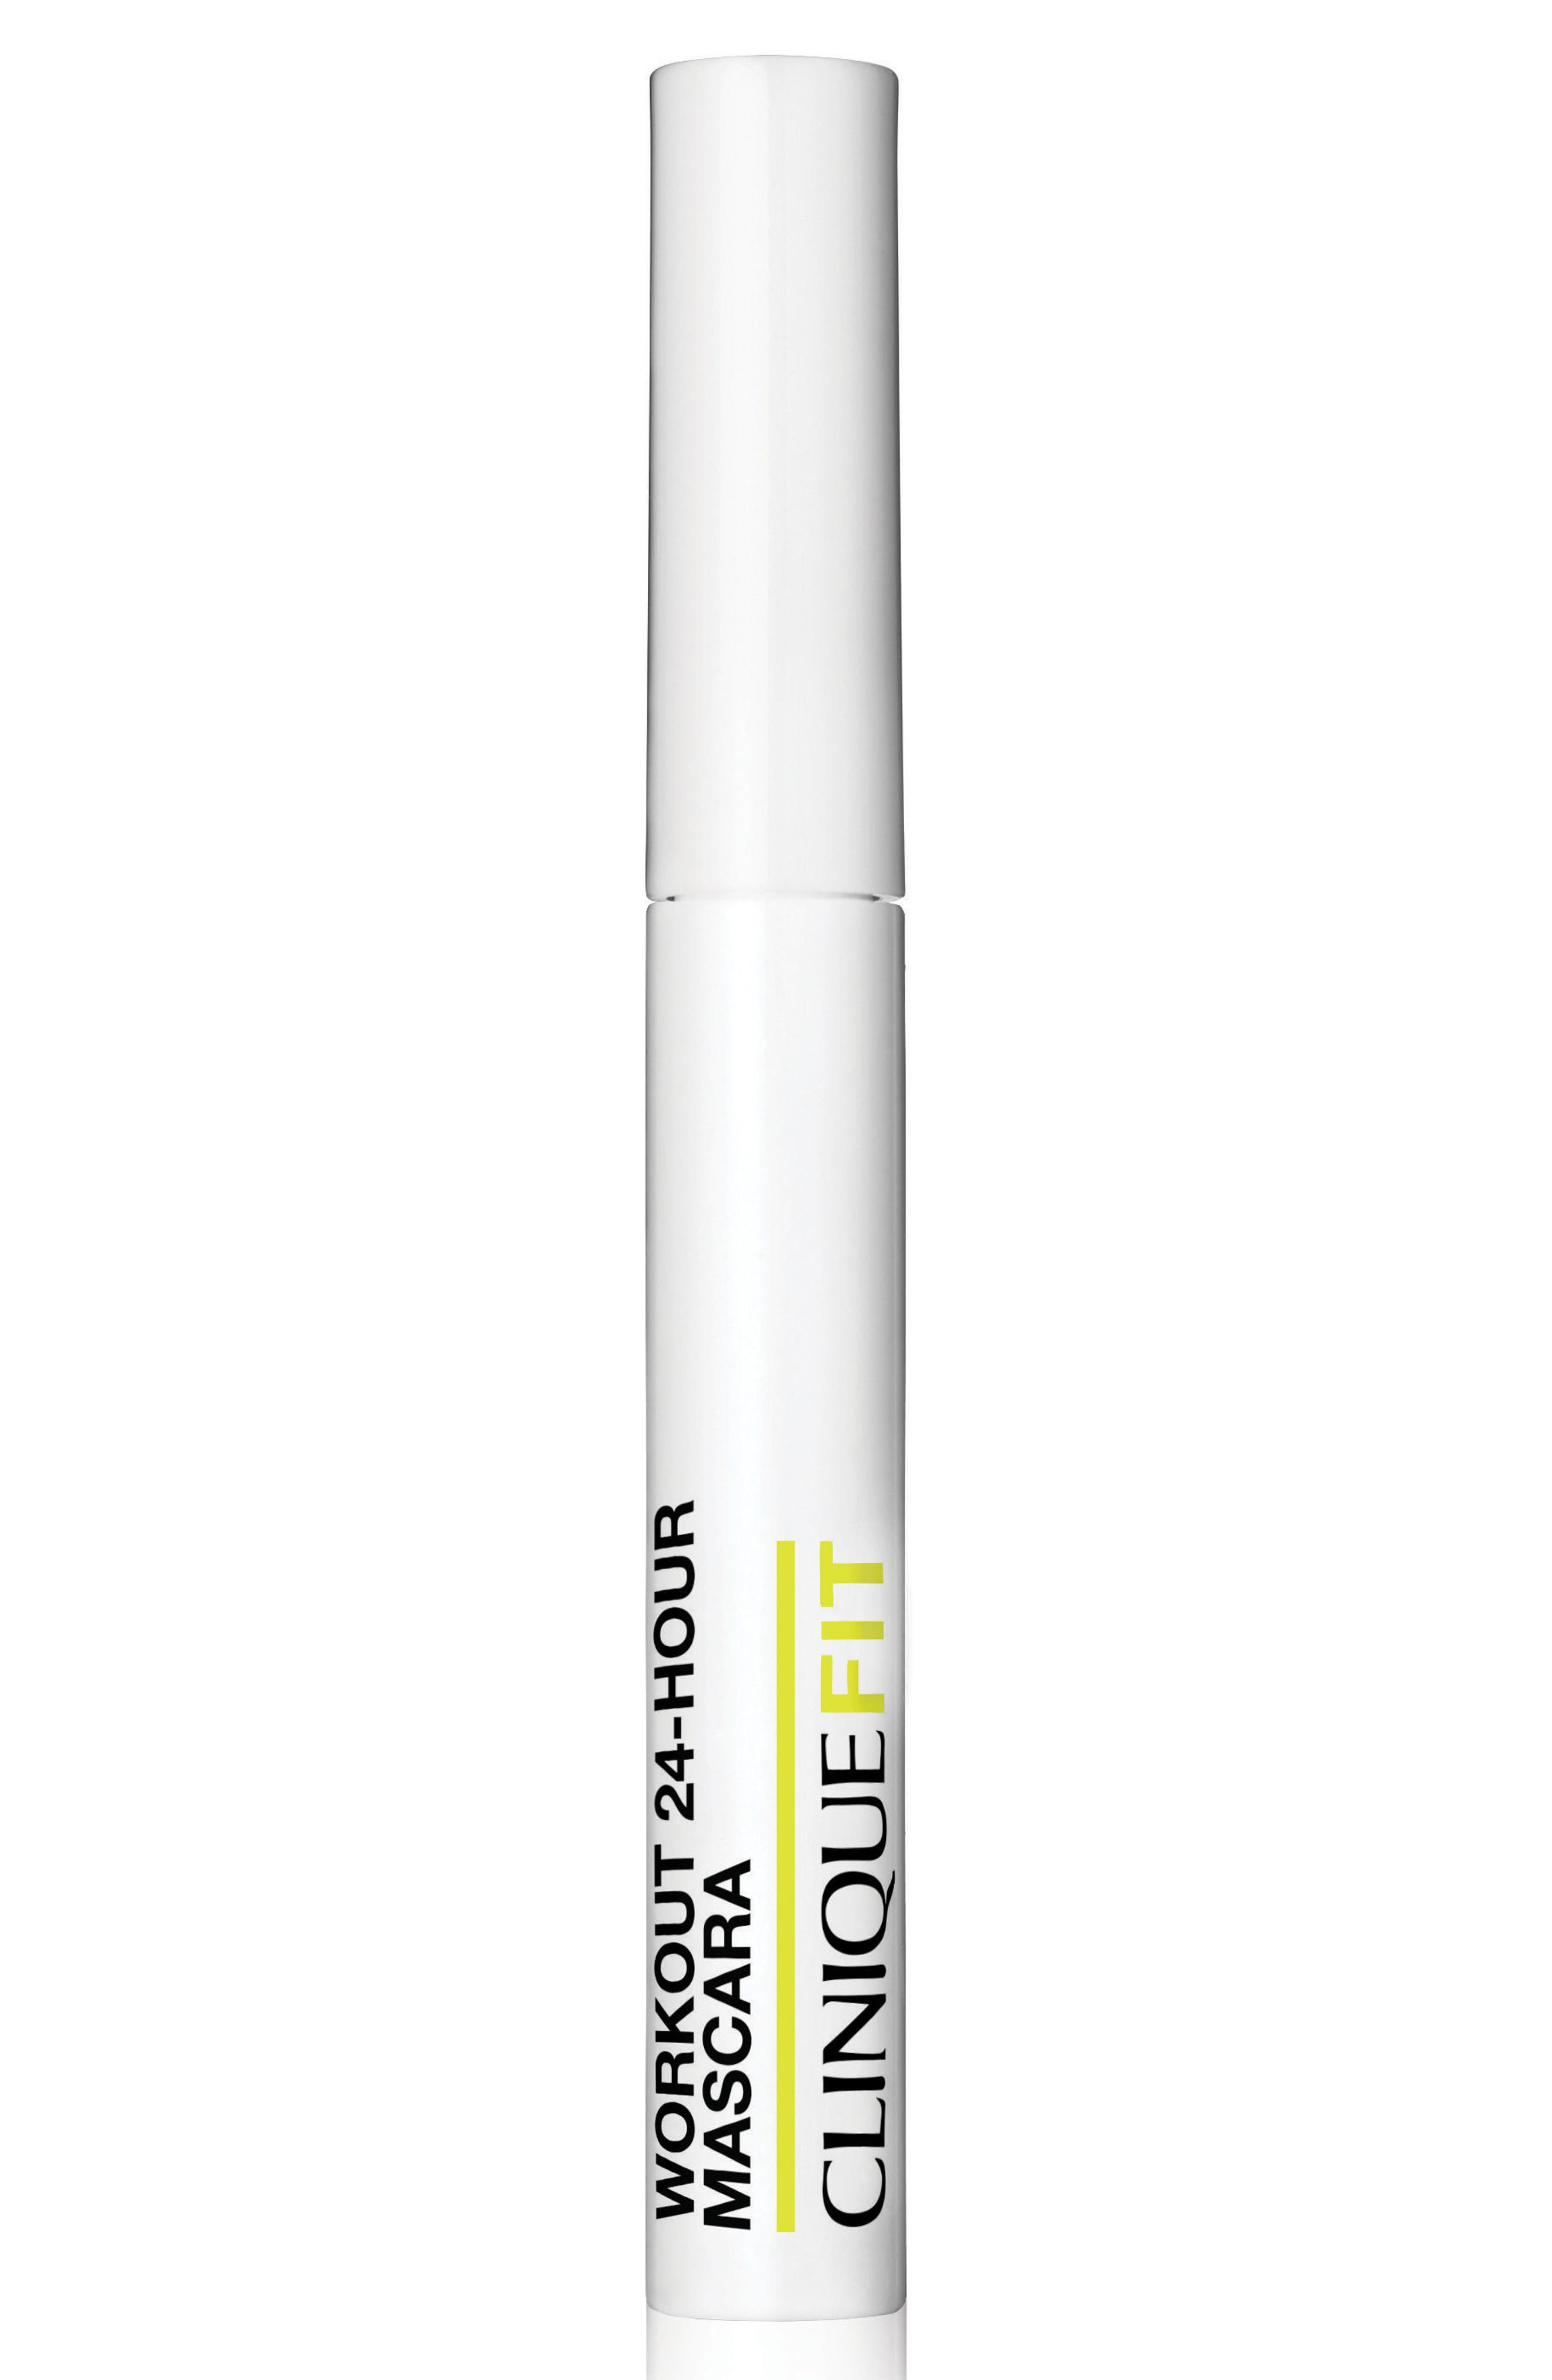 CliniqueFIT Workout 24-Hour Mascara,                             Alternate thumbnail 9, color,                             No Color